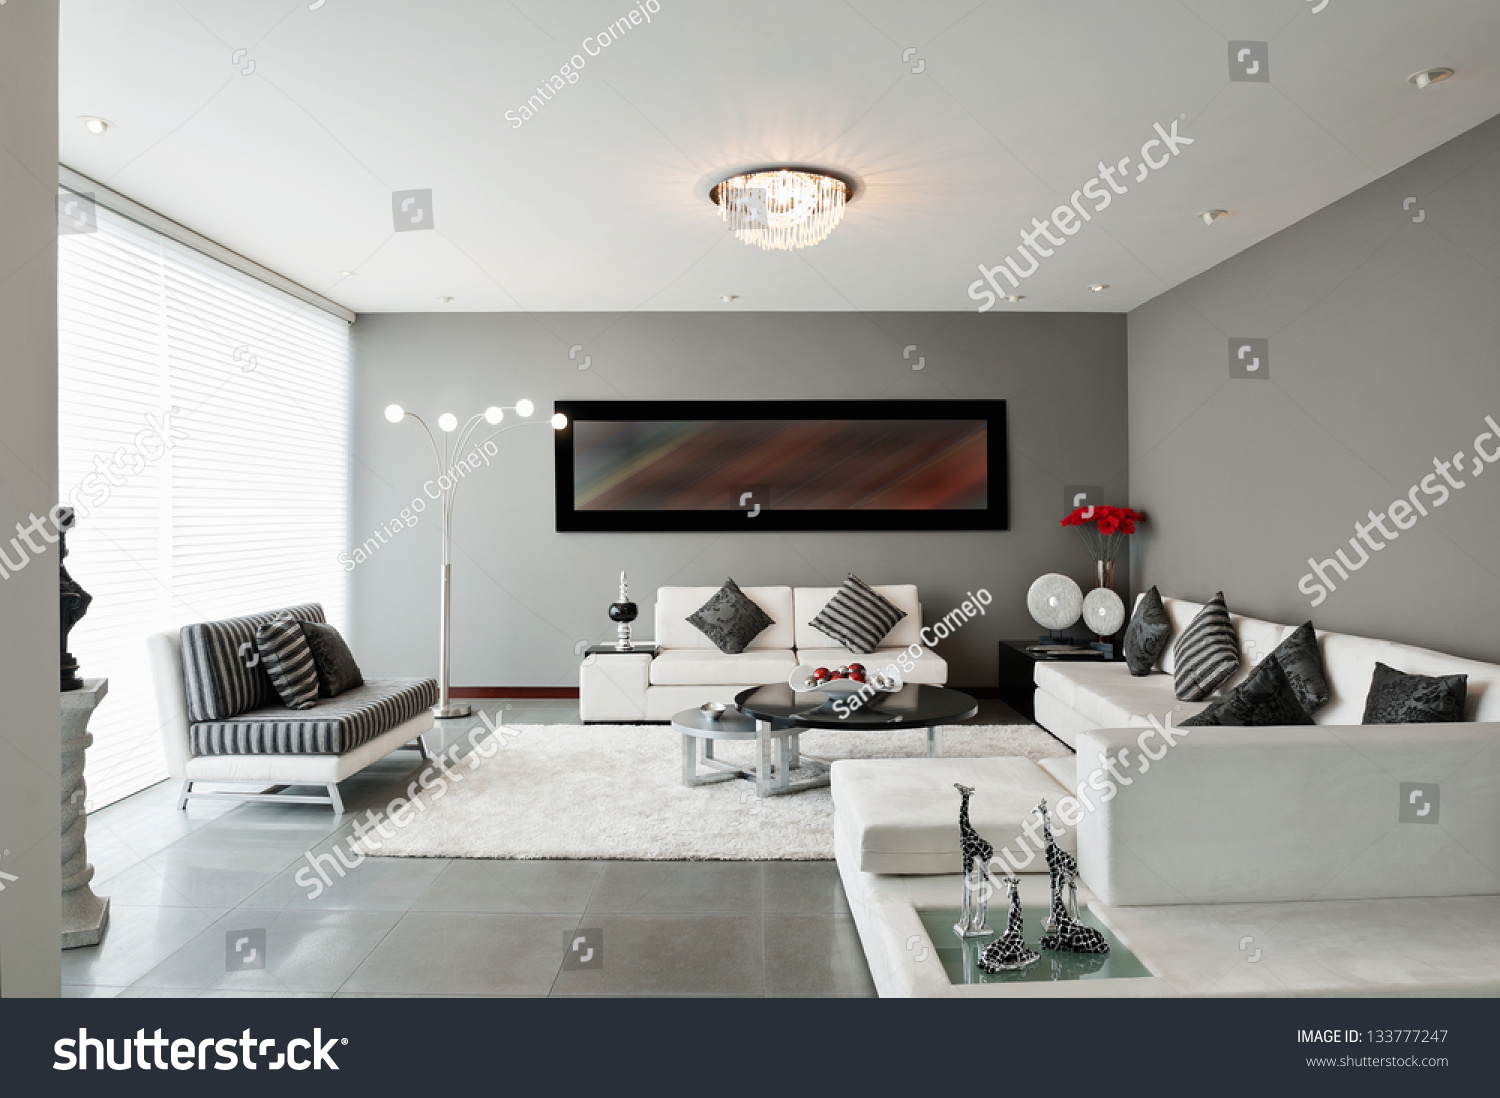 Interior Design Living oom Stock Photo 133777247 - Shutterstock - ^